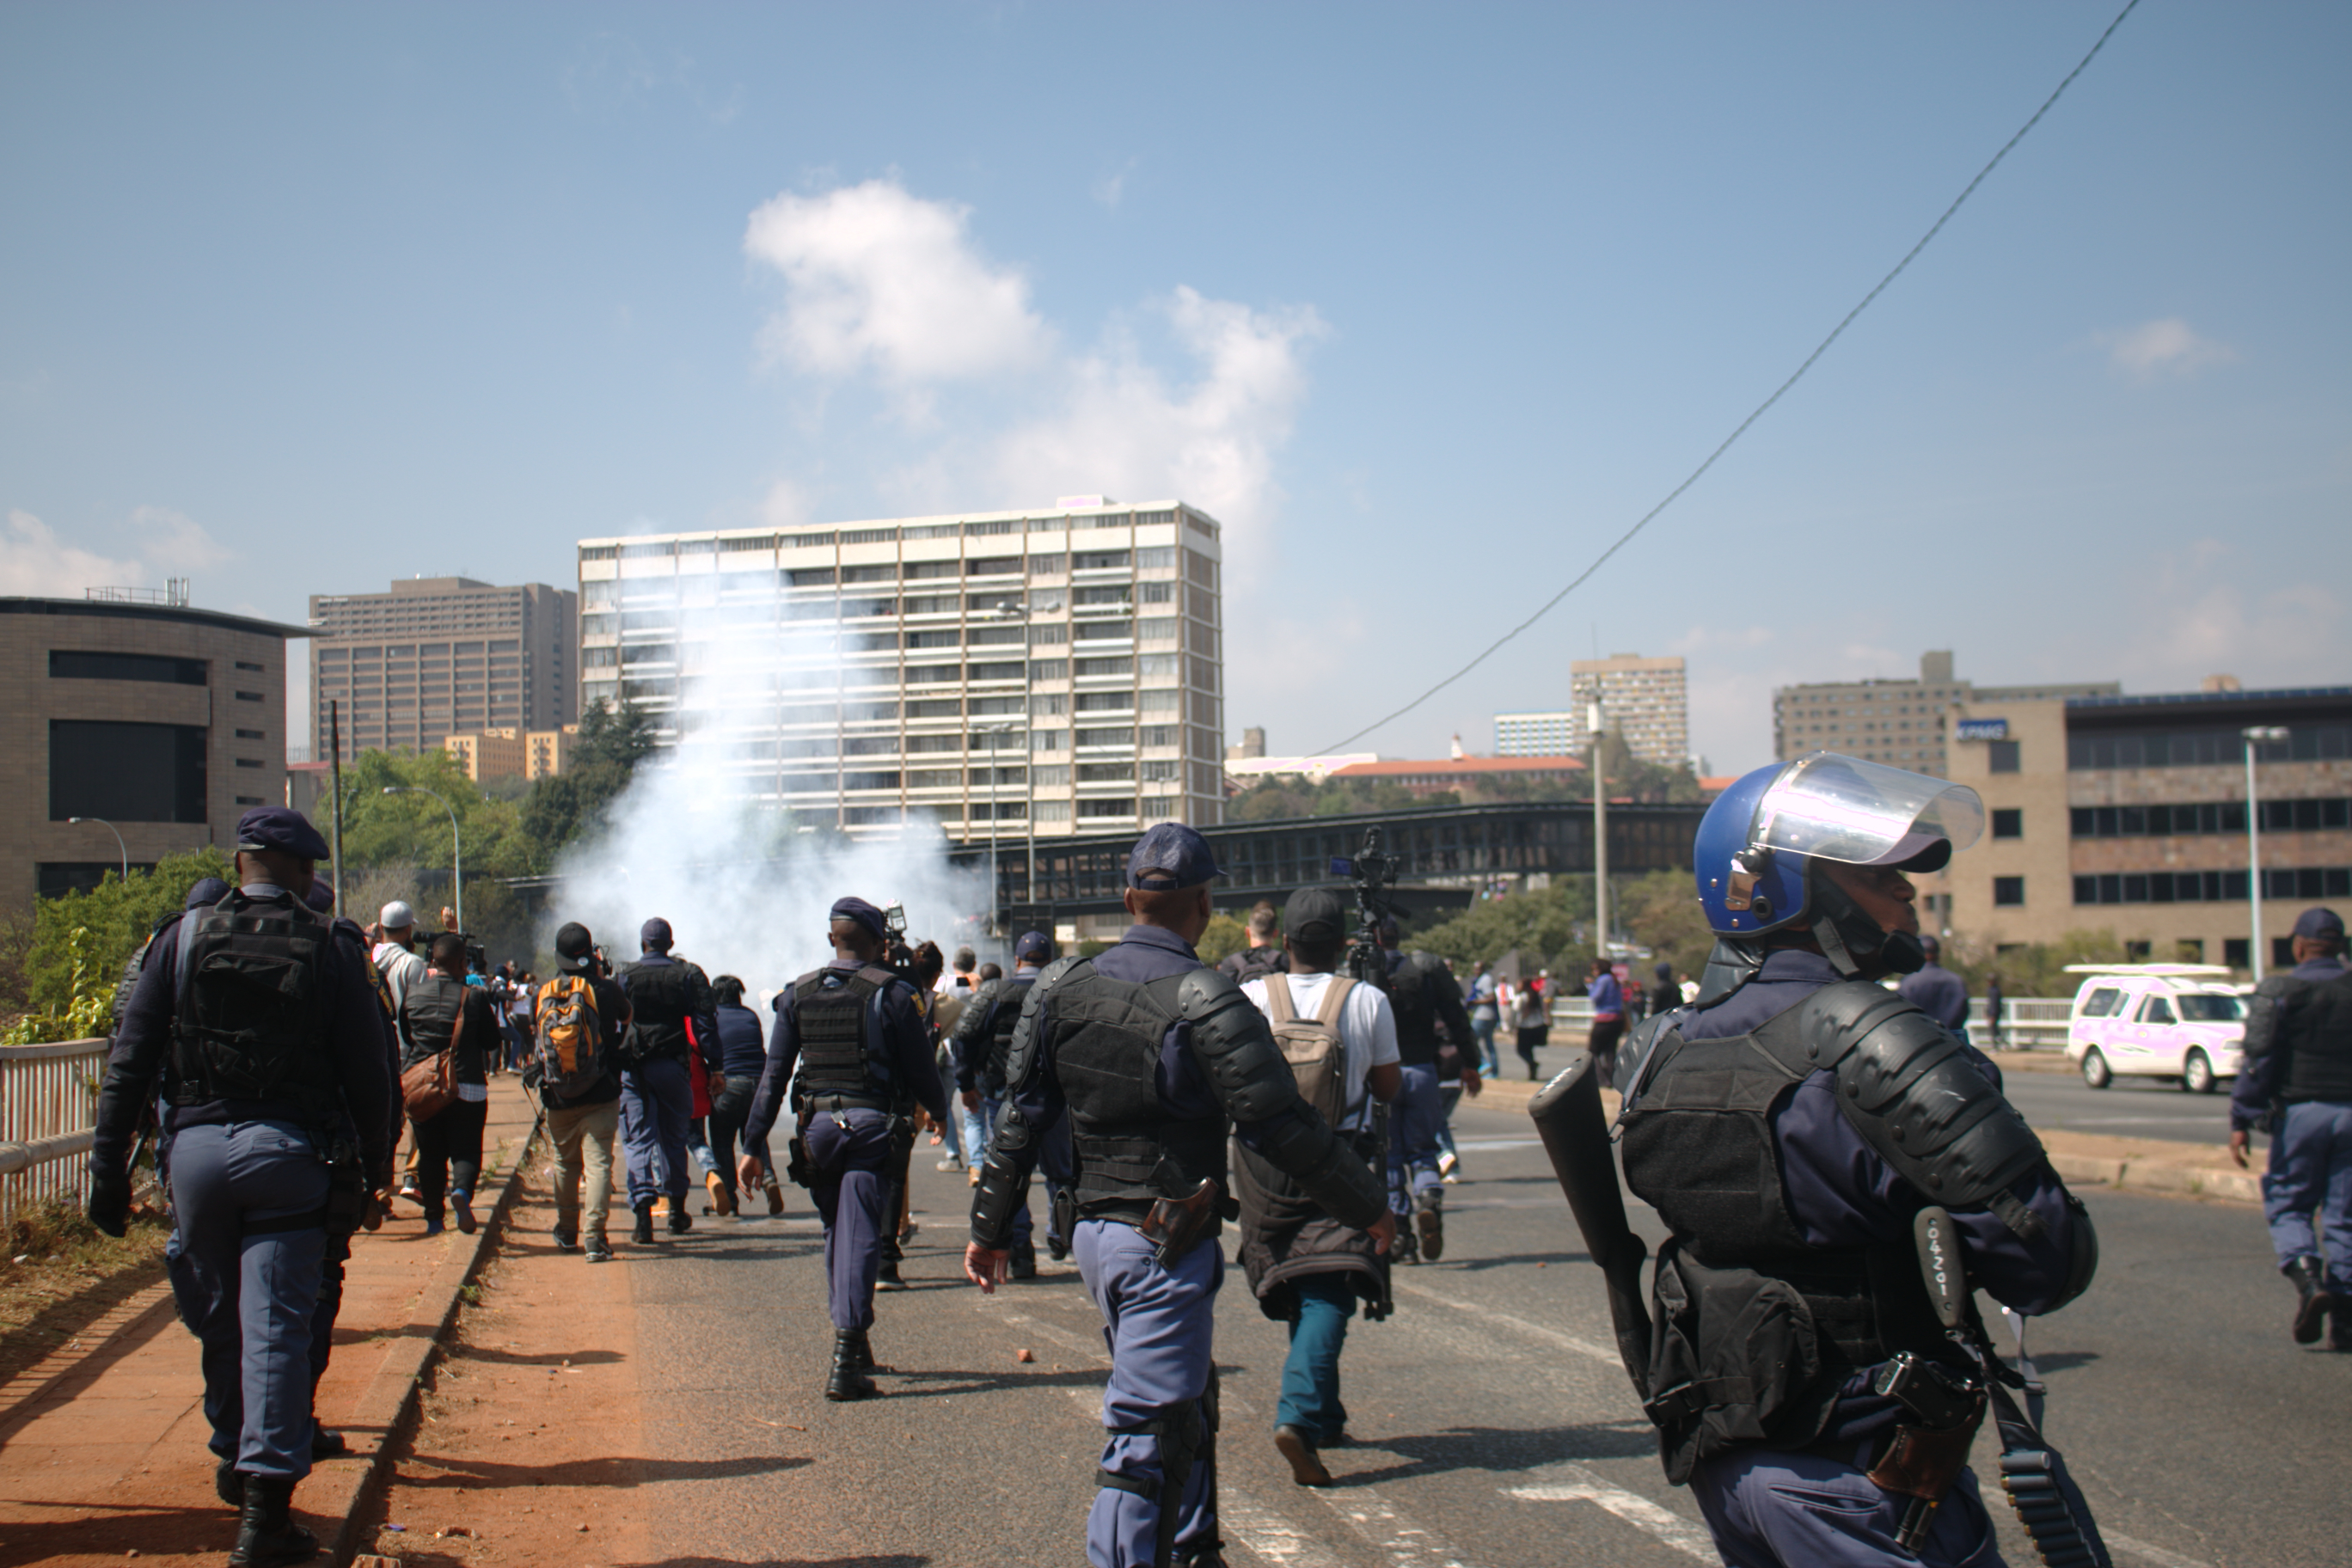 Second day of Wits #Fees2017 sees violent clashes